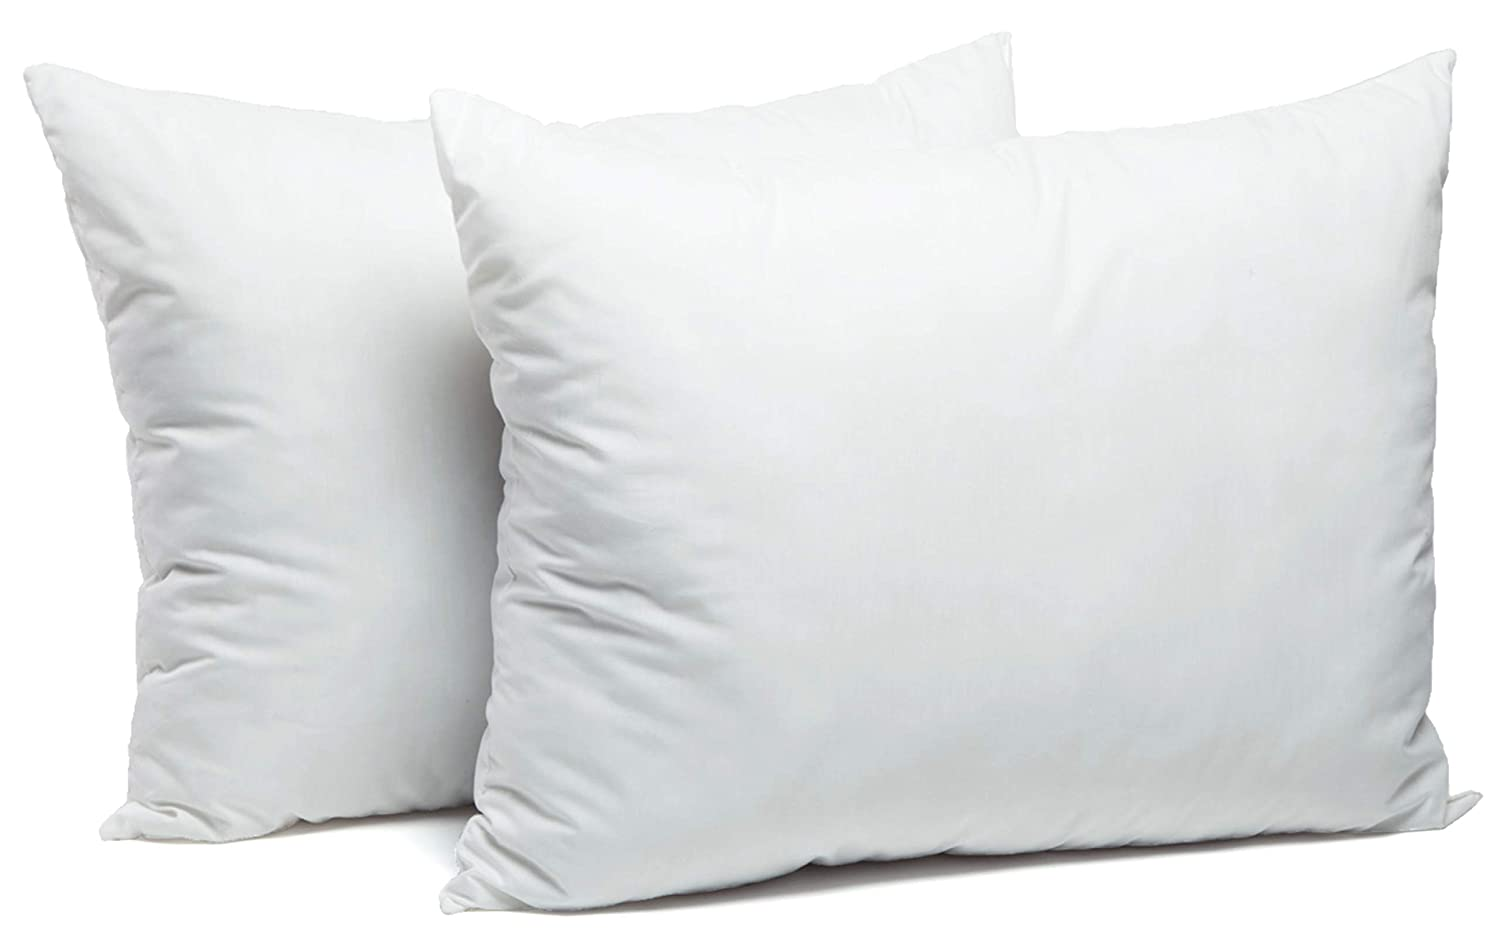 Foamily 2 Pack Bed Pillows for Sleeping